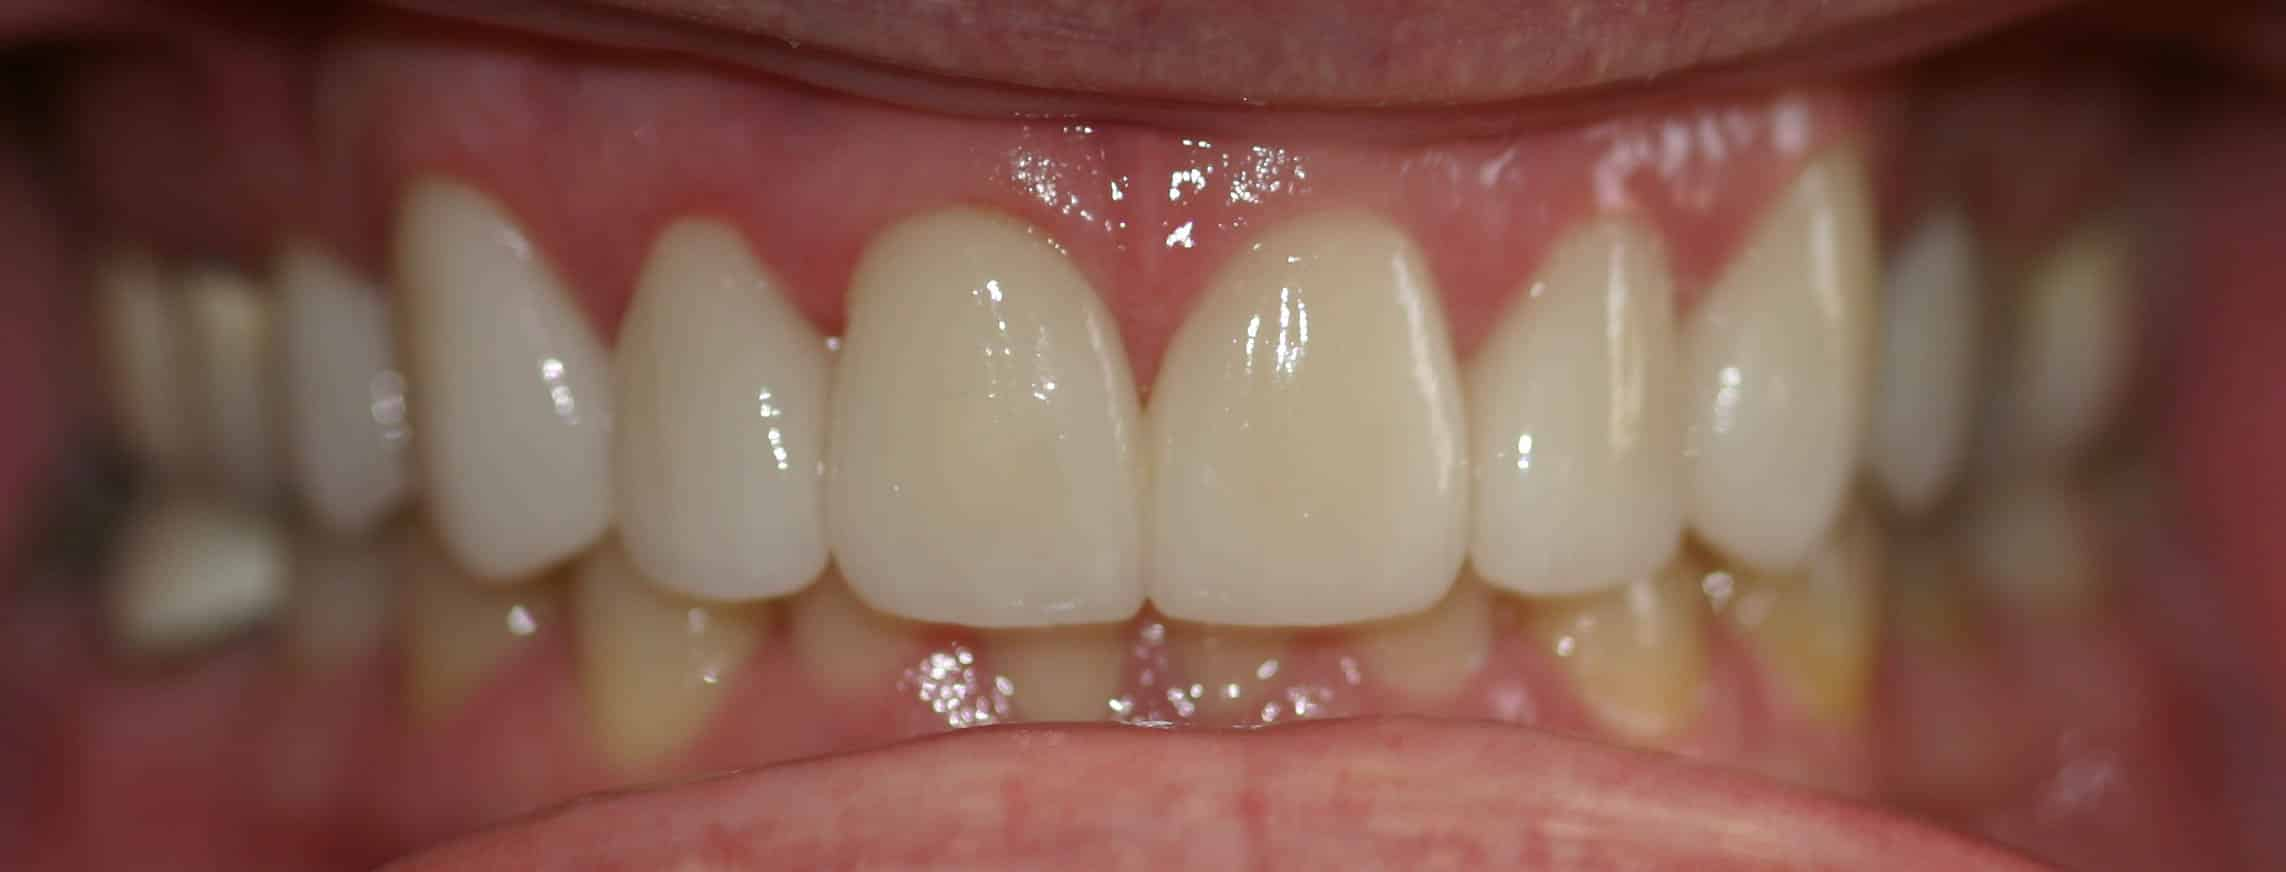 cosmetic dentistry after 25b